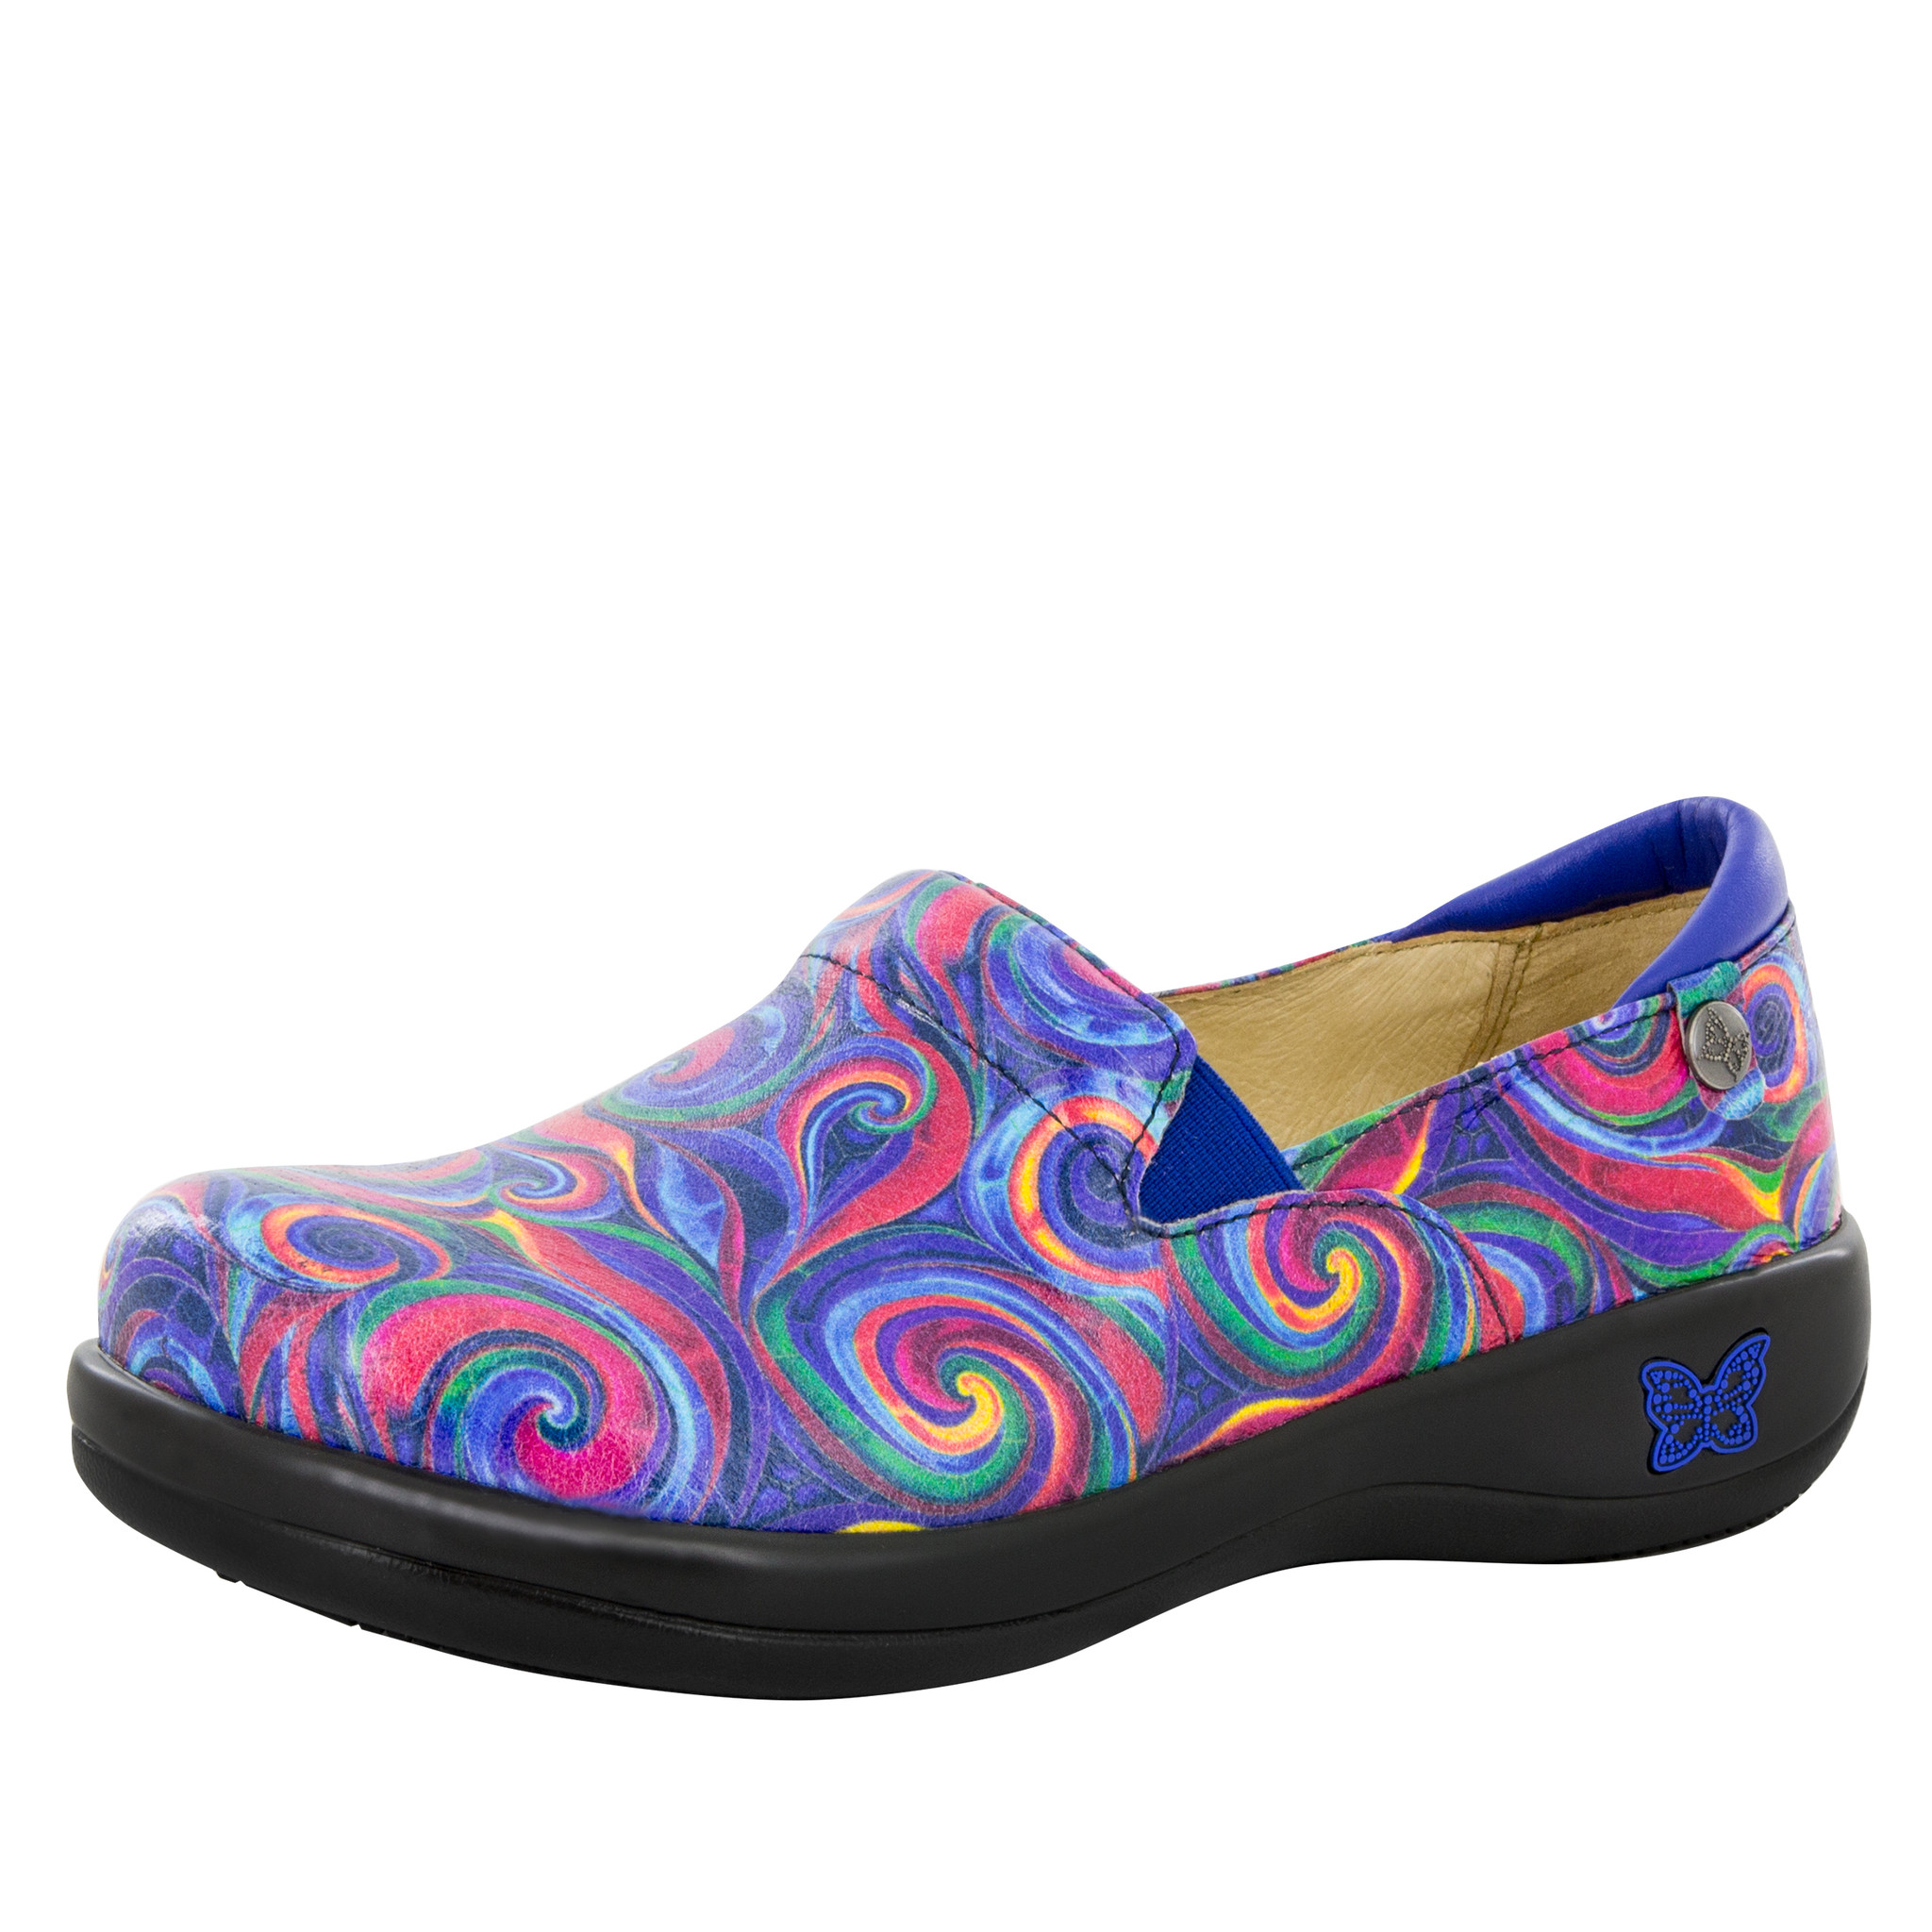 keli swirly goodness professional shoe - alegria shoes - 1 TJLTBNX